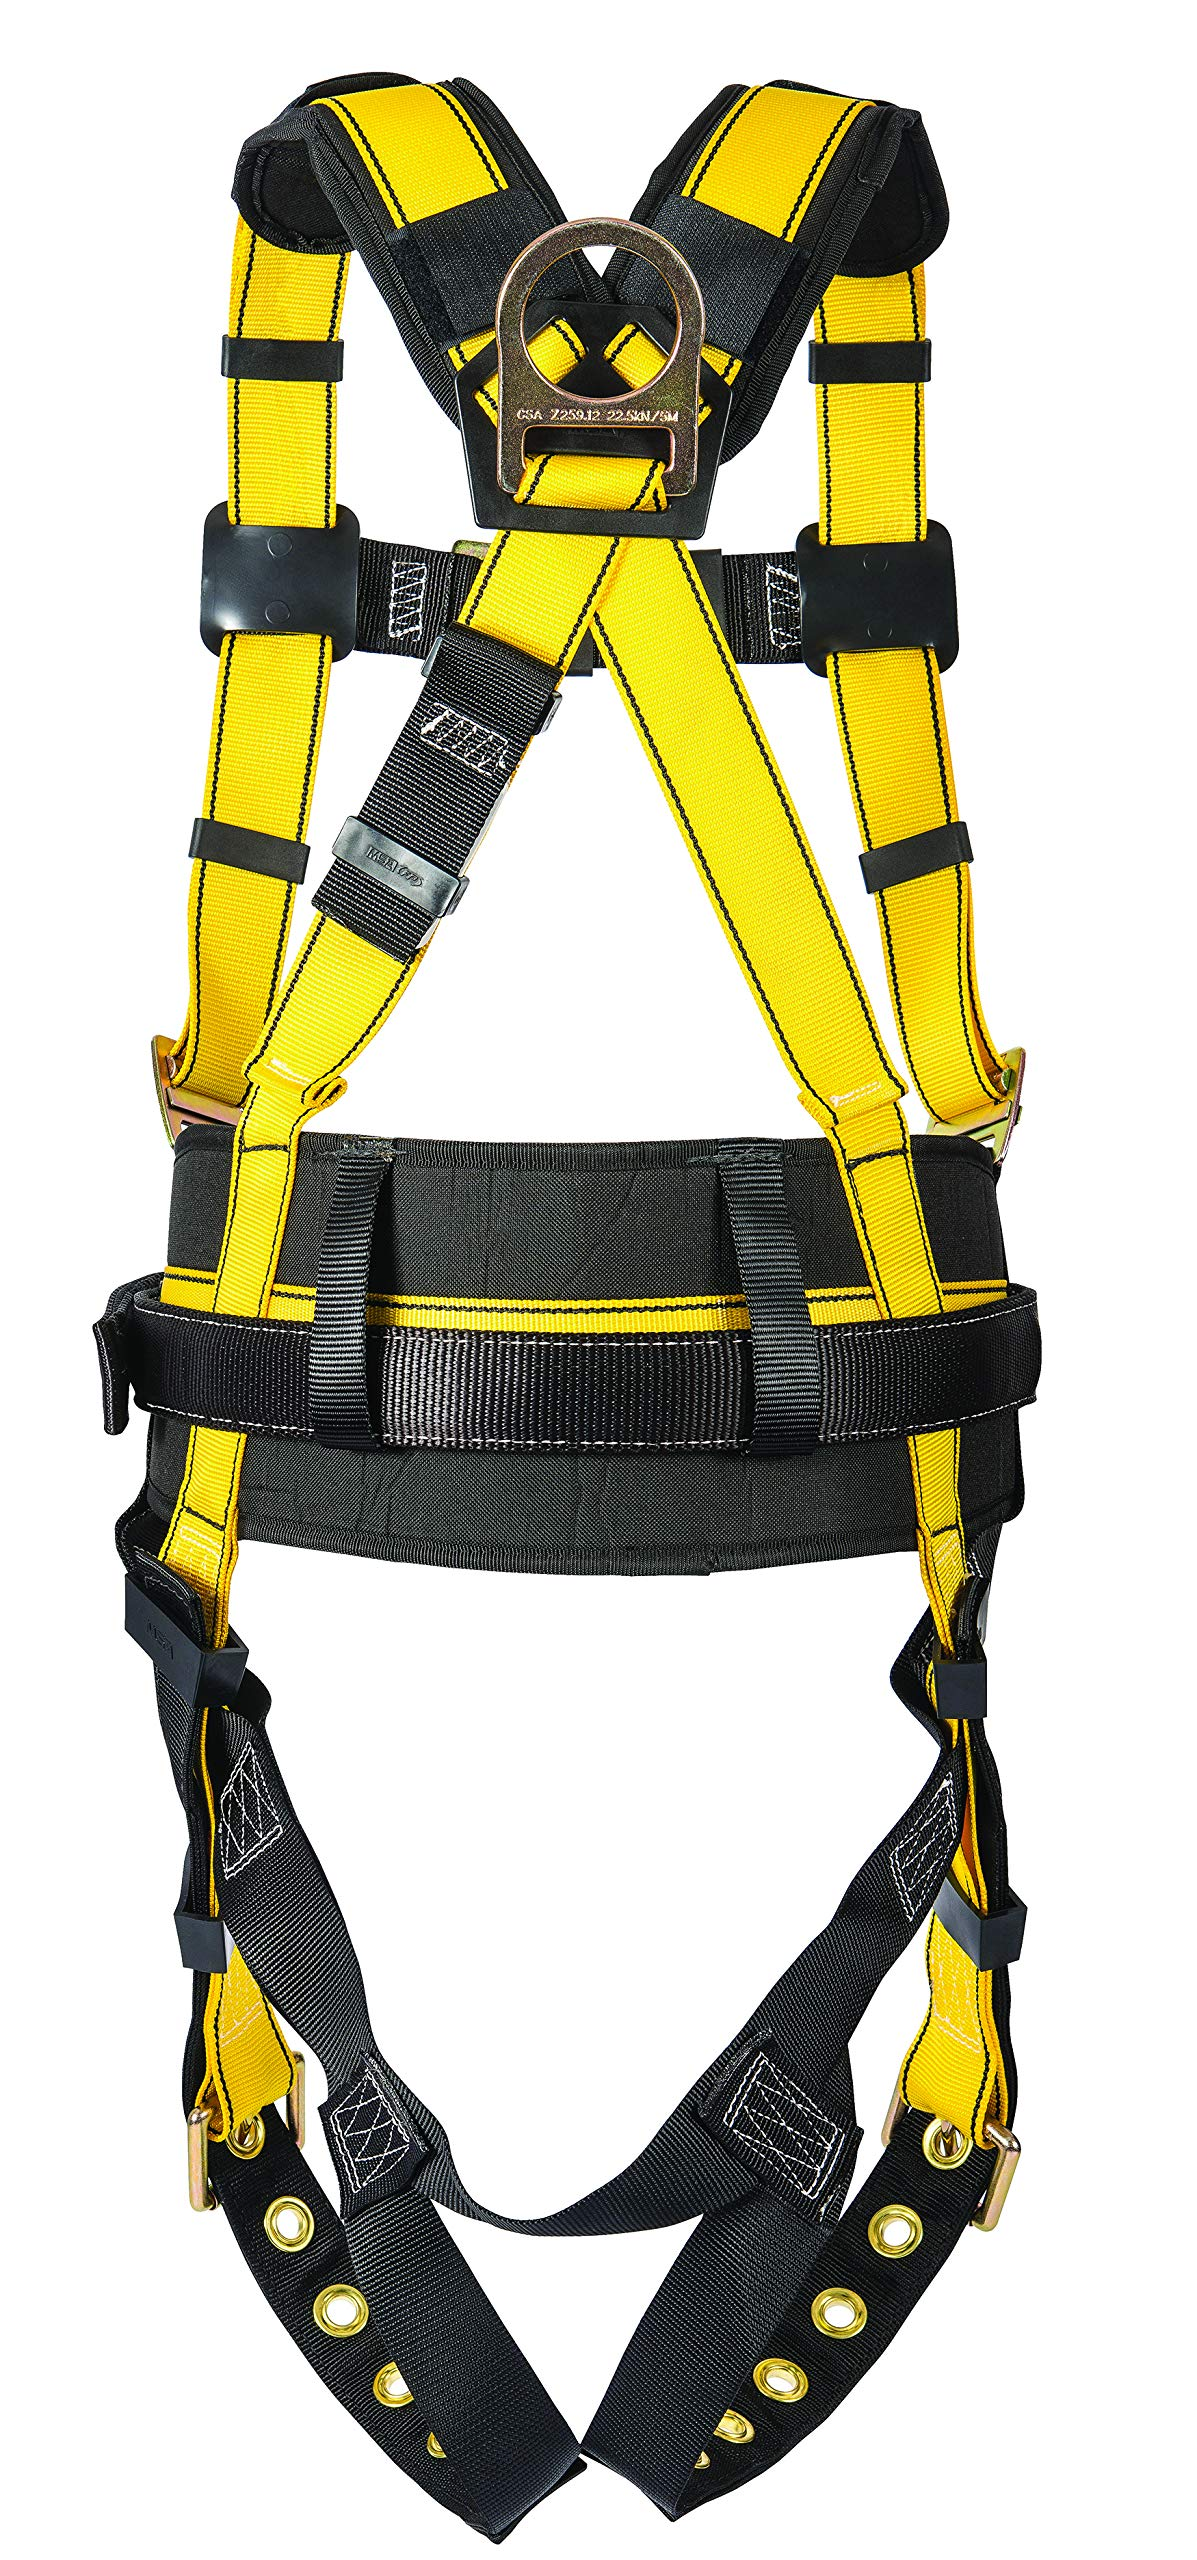 MSA 10077571 Workman Construction Harness with Back/Hip D-Rings, Tongue Buckle Leg Straps, Qwik-Fit Chest Strap Buckle, Integral Back Pad, Tool Belt and Shoulder Pads, Standard by MSA (Image #1)